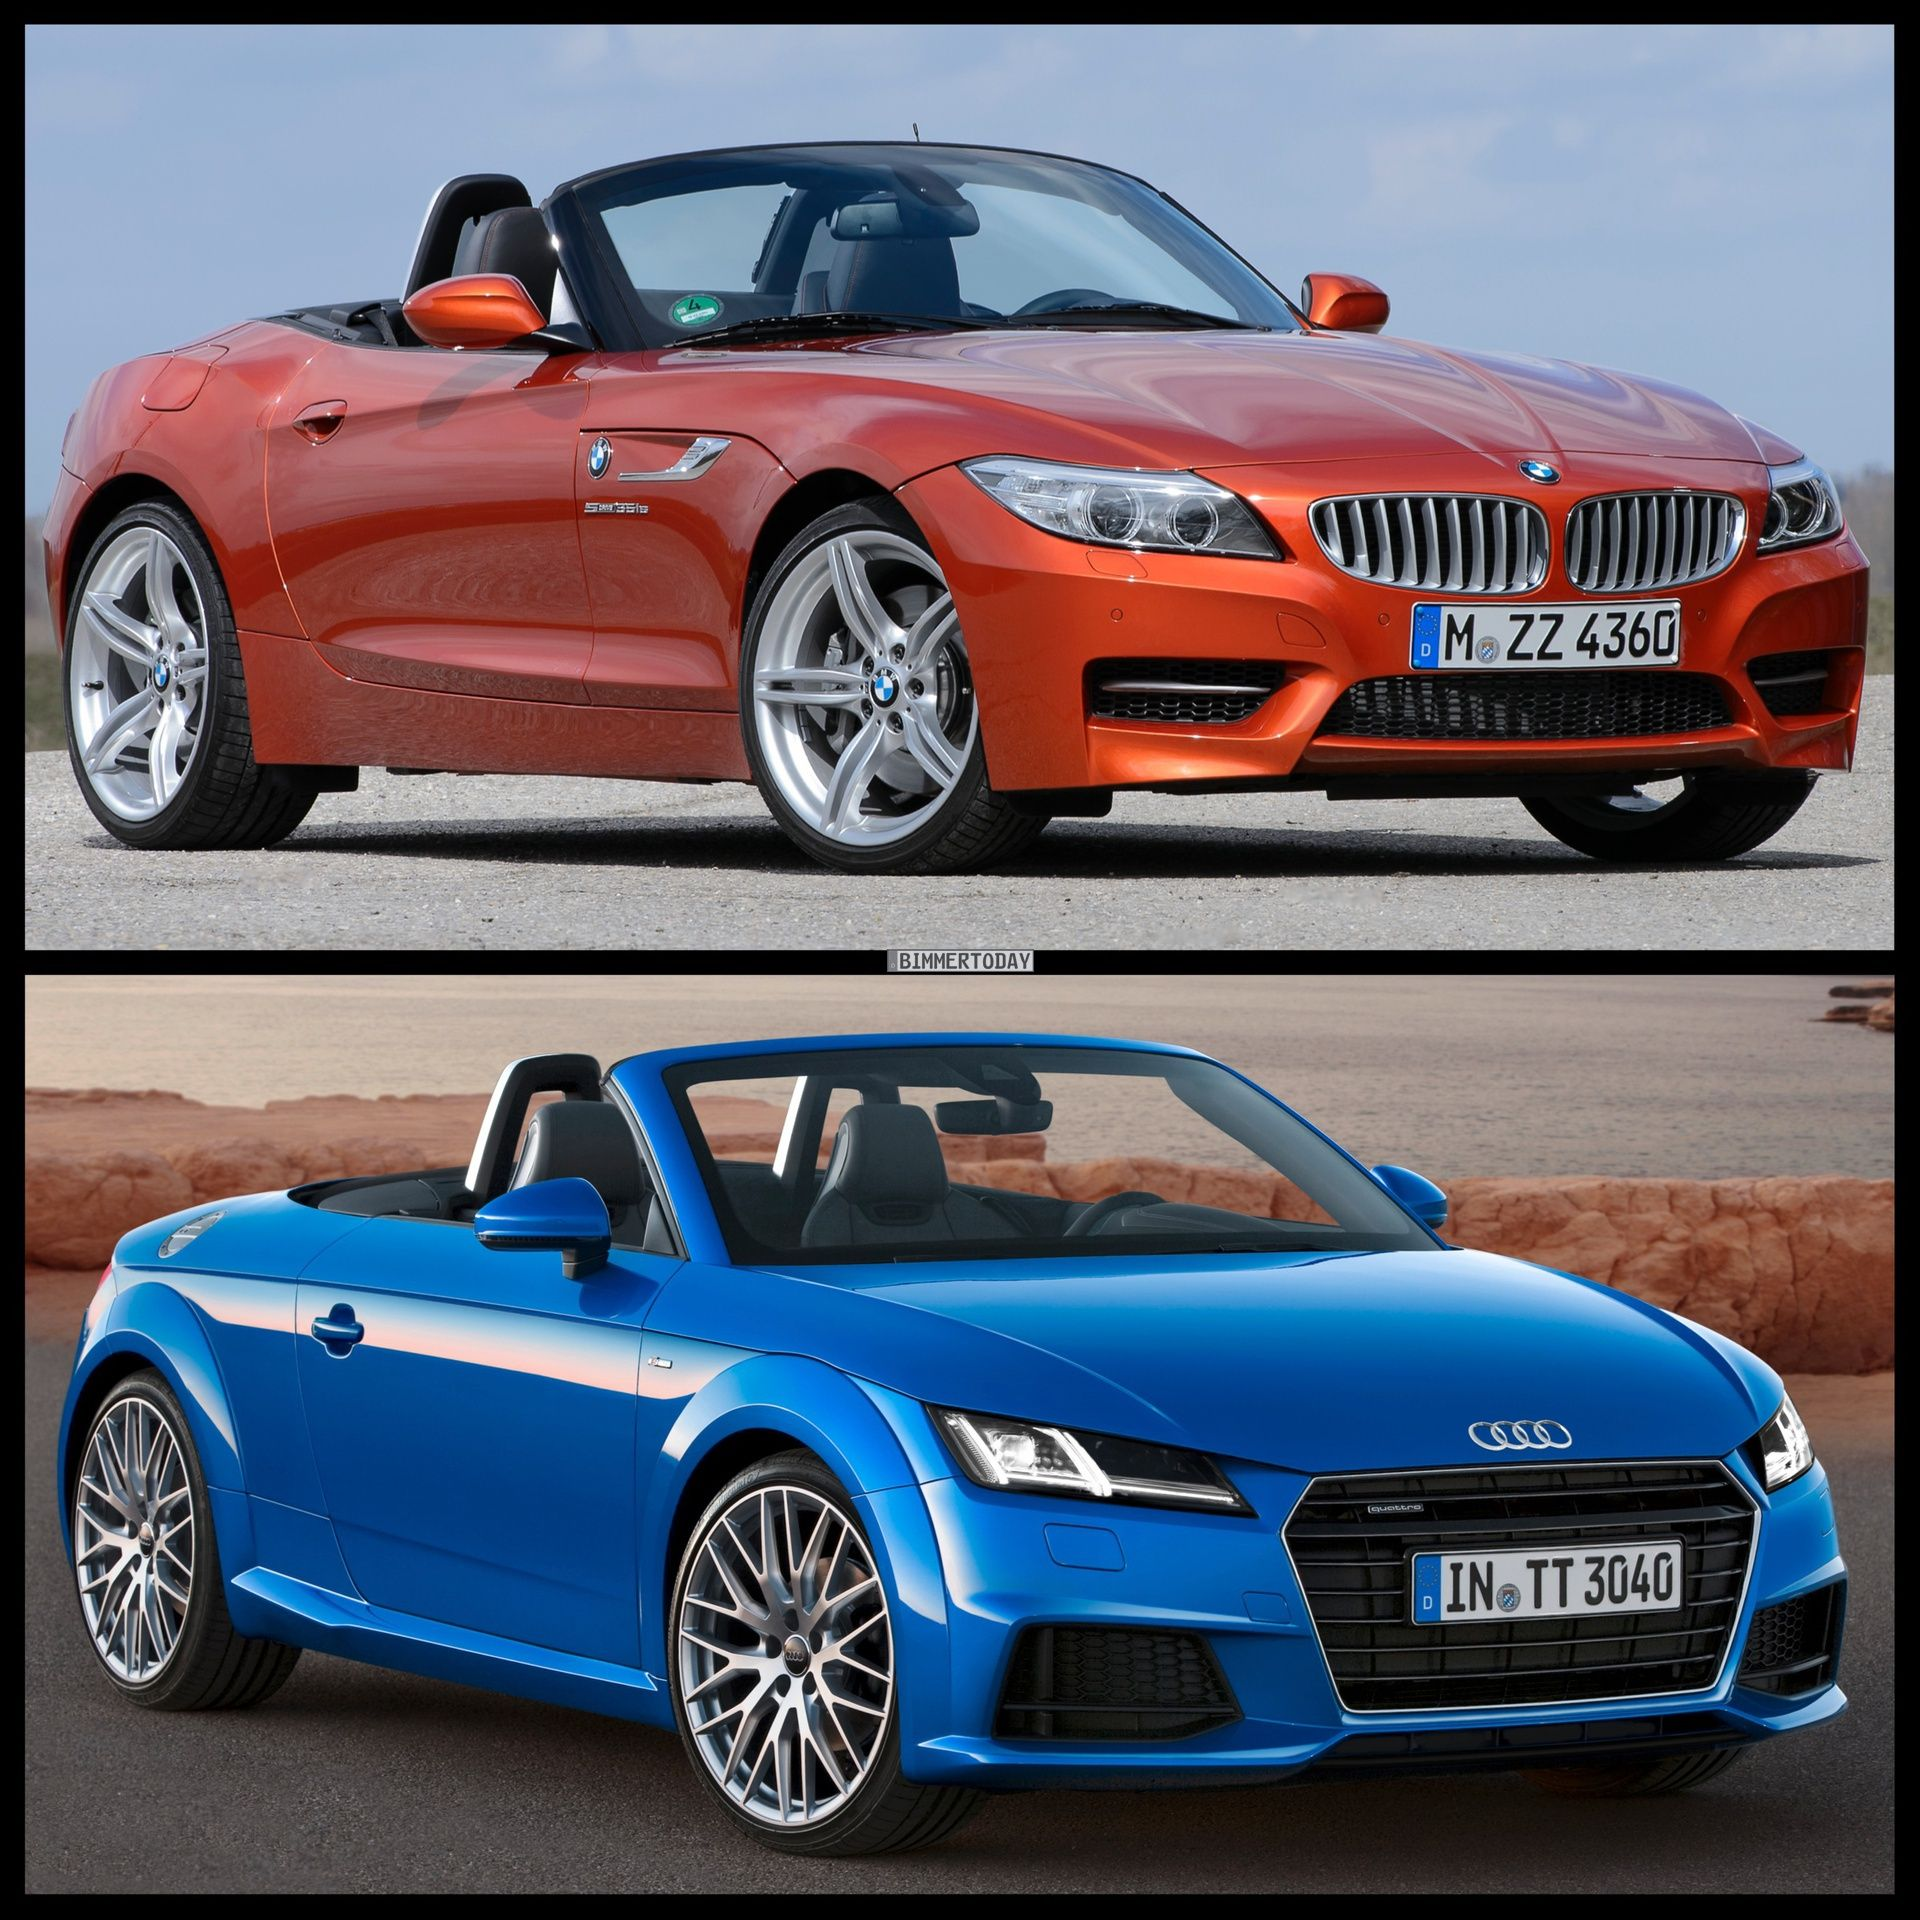 2015 audi tt roadster vs bmw z4 roadster photo comparison http